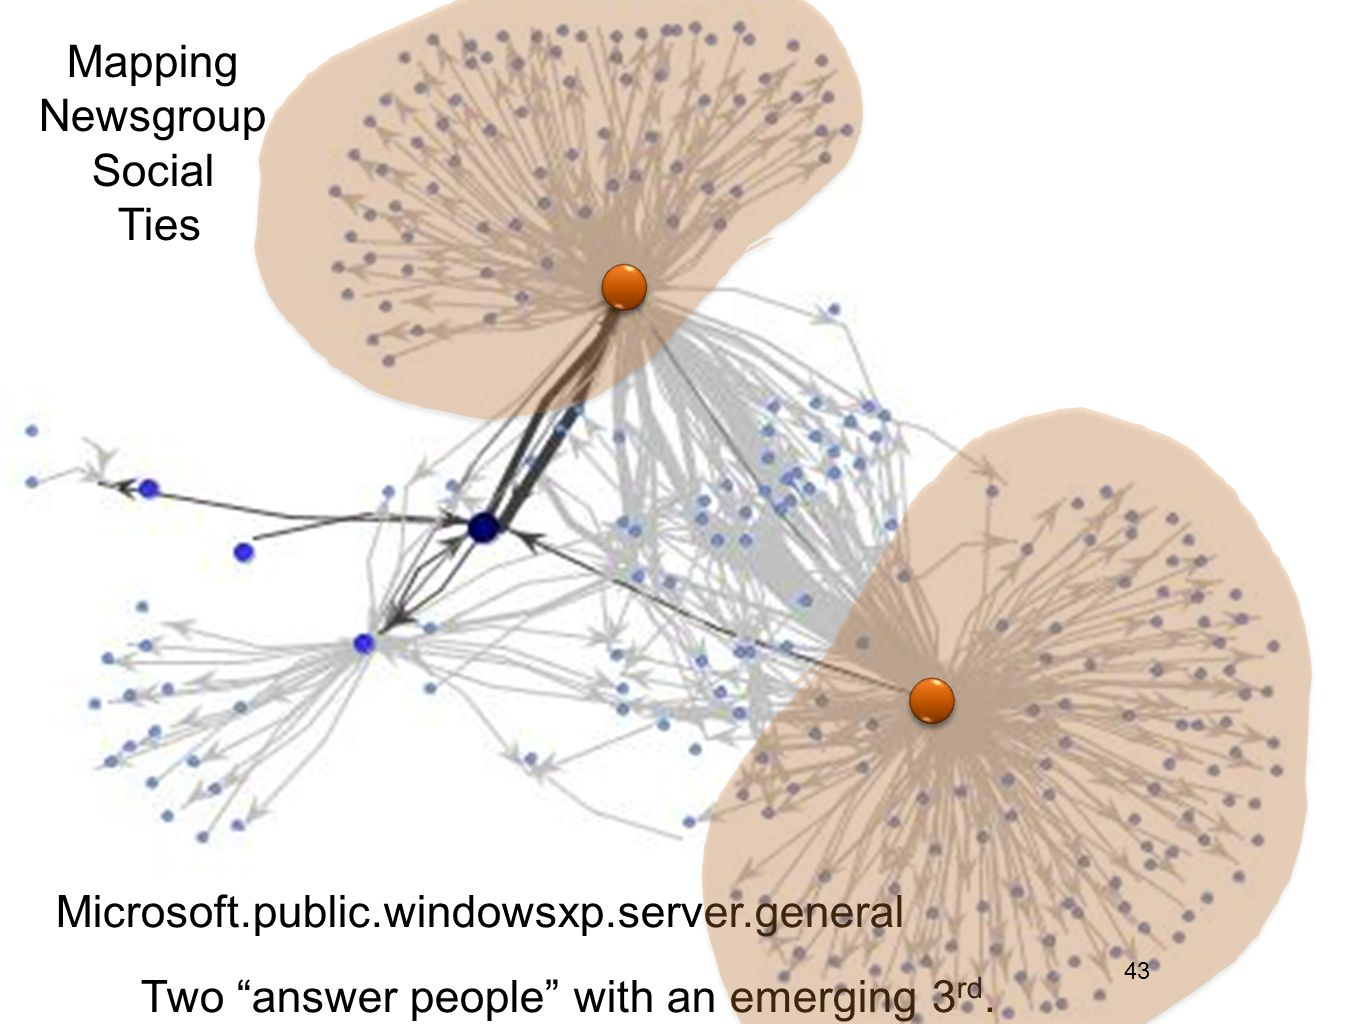 Mapping Newsgroup Social Ties